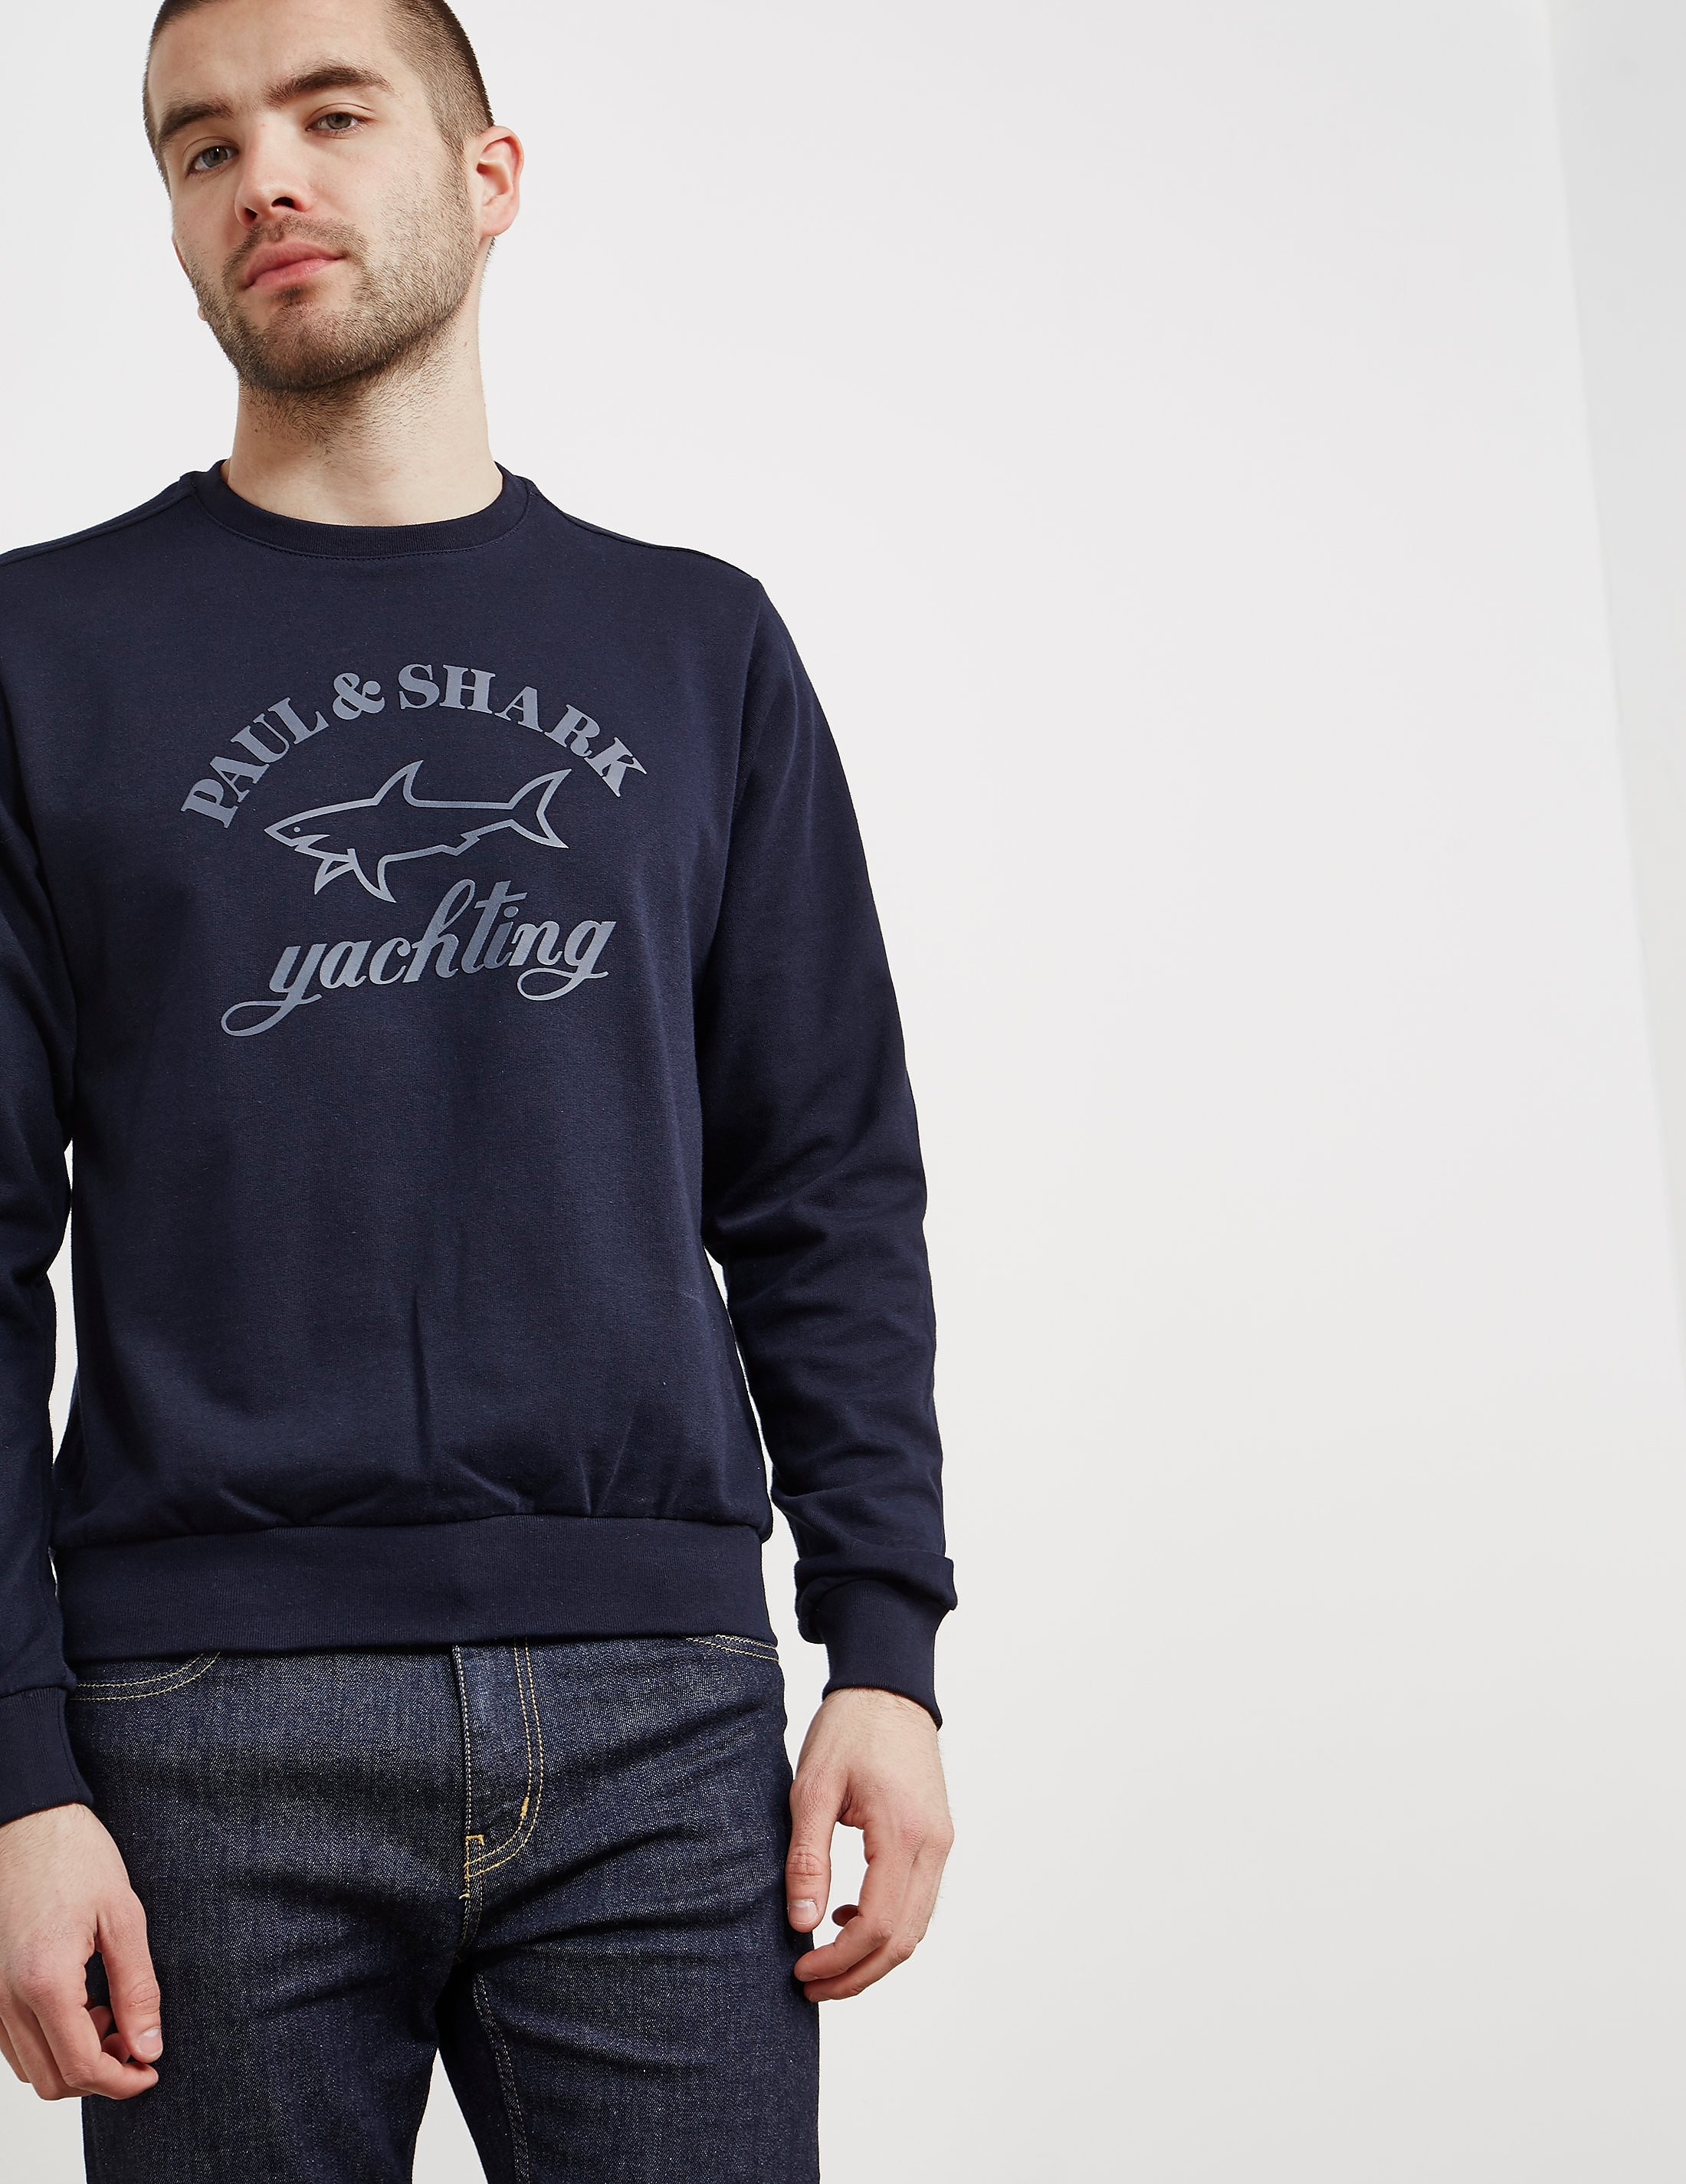 Paul and Shark Rubber Print Sweatshirt